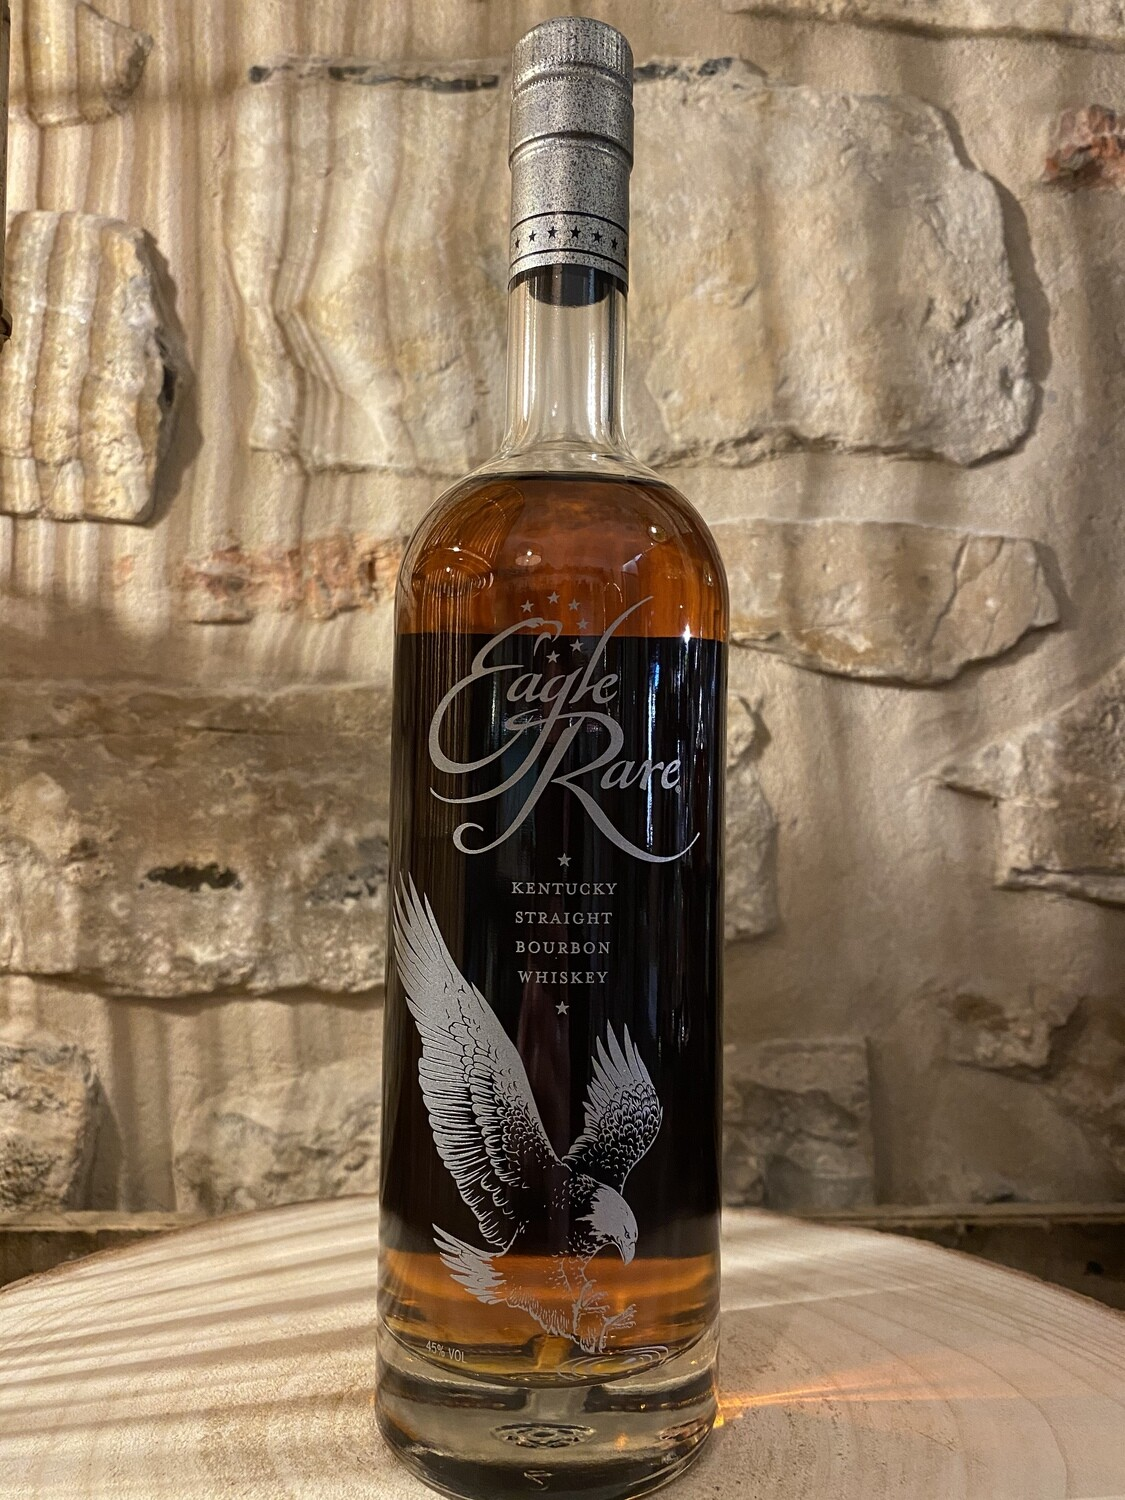 Bourbon Eagle Rare, Kentucky